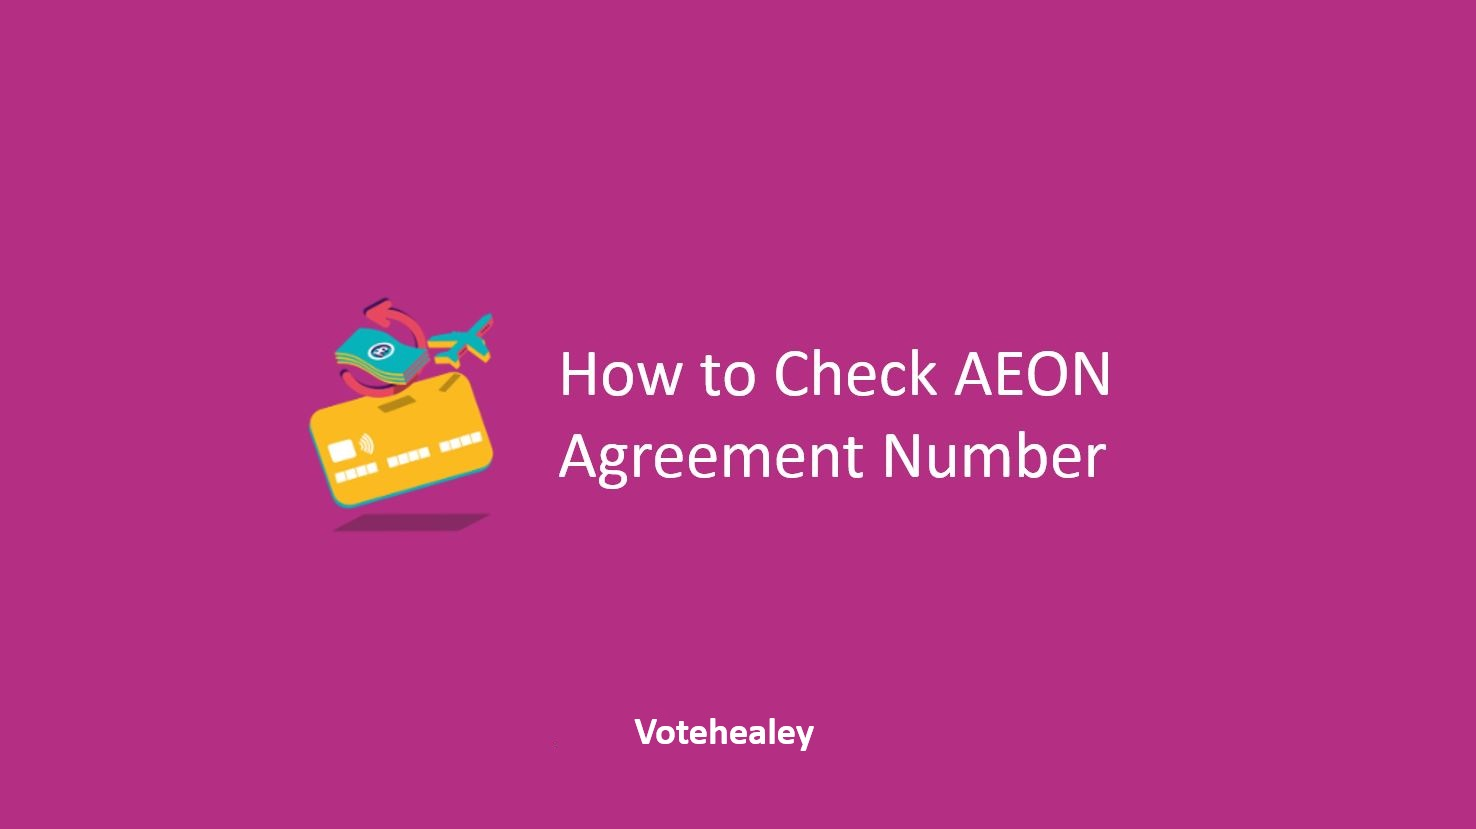 How to Check AEON Agreement Number